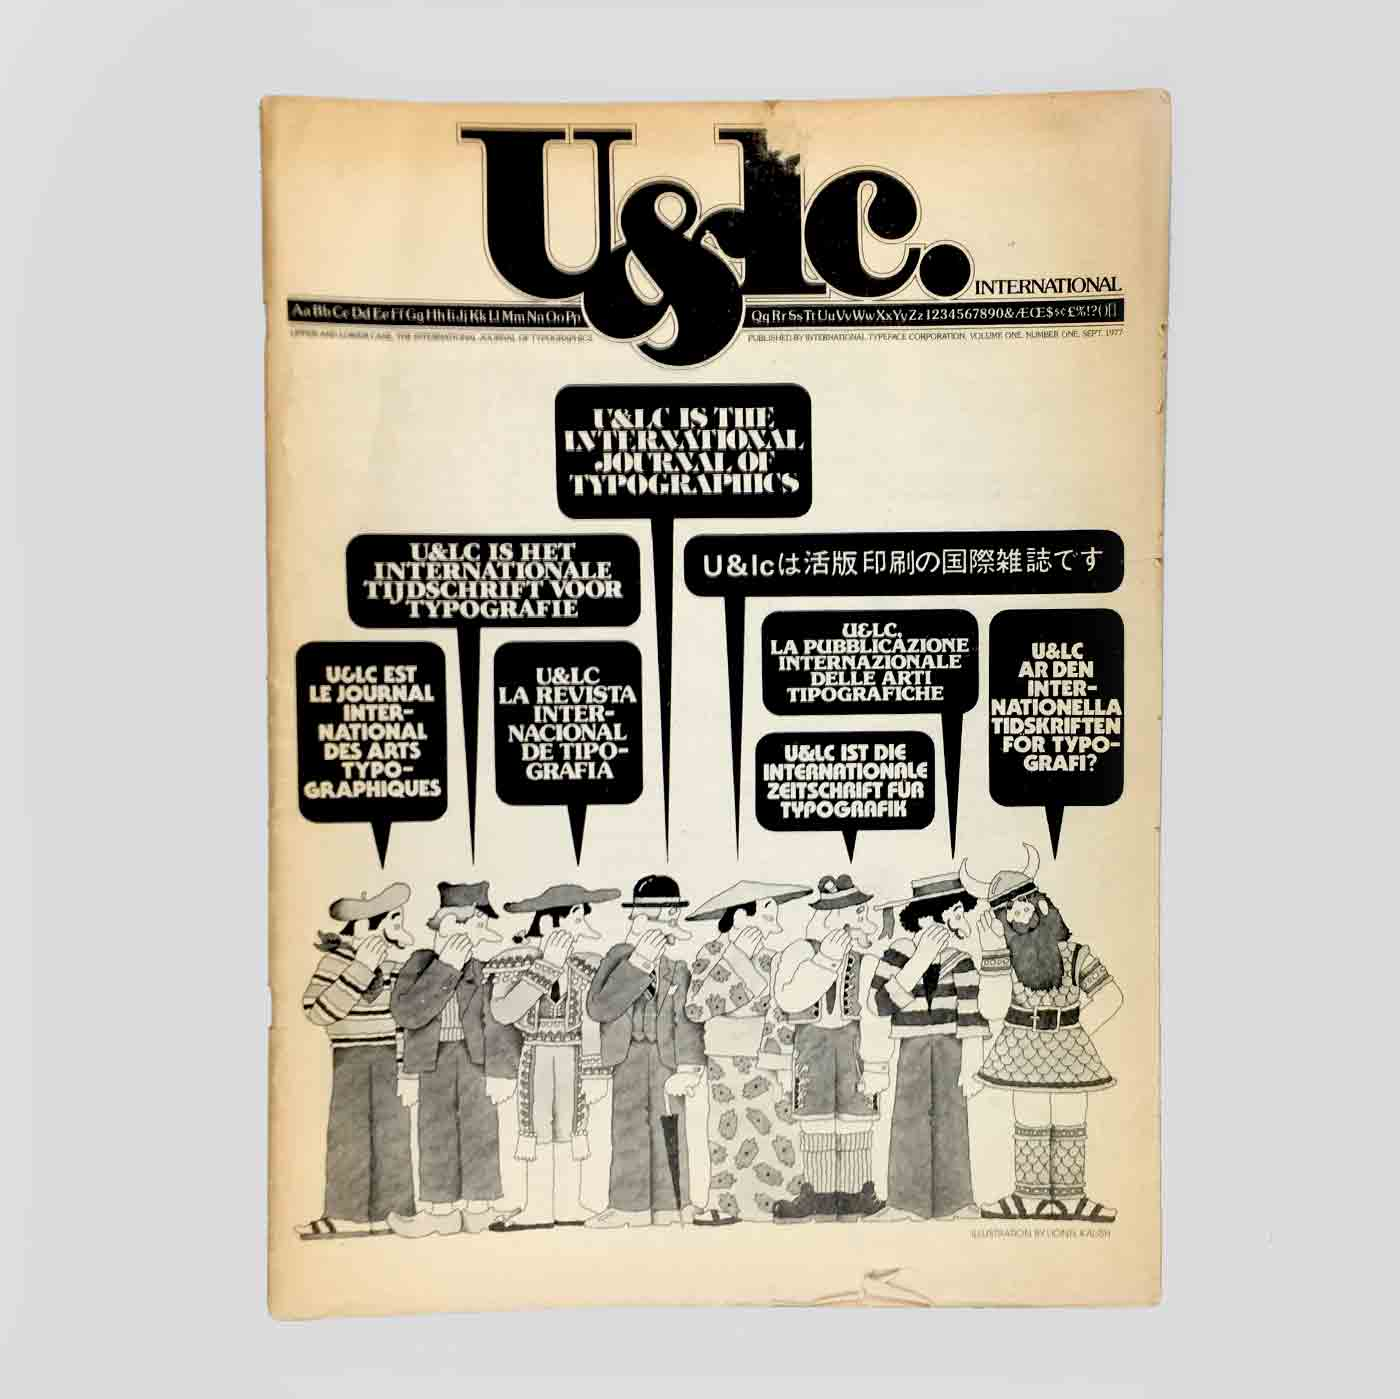 U&lc Vol. 1, No. 1, Sept 1977